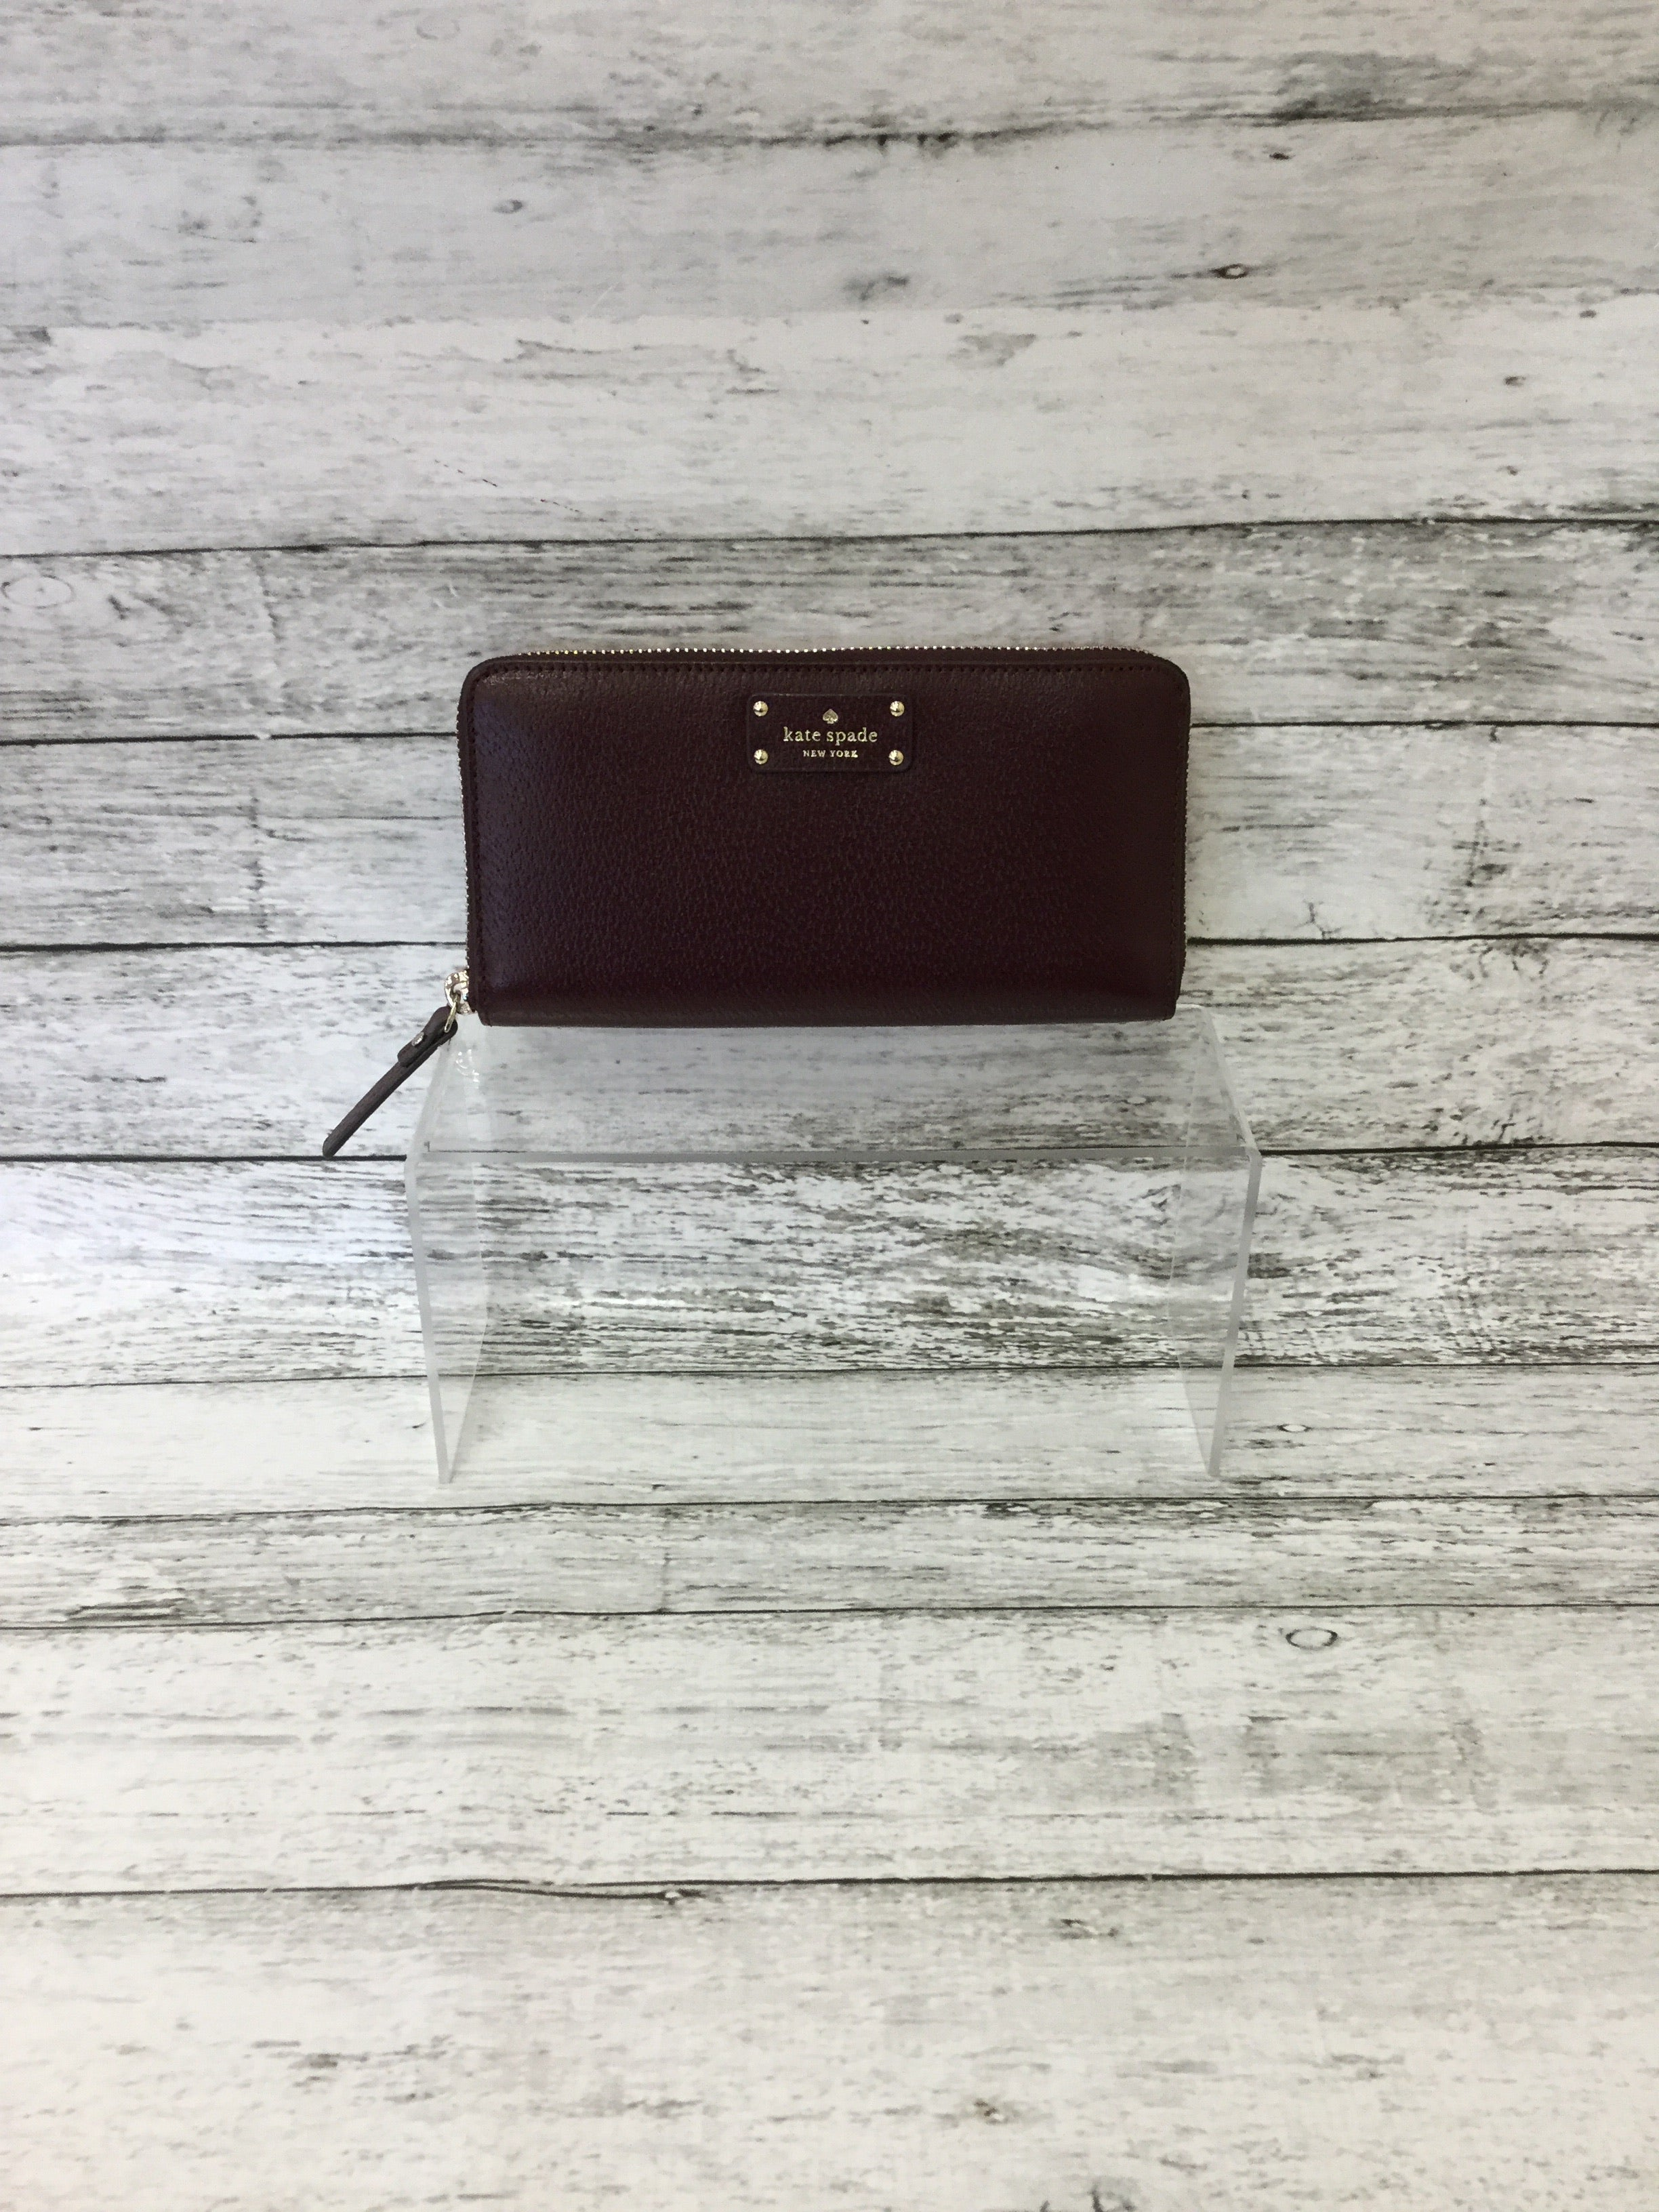 Primary Photo - BRAND: KATE SPADE <BR>STYLE: WALLET <BR>COLOR: MAROON <BR>SIZE: LARGE <BR>SKU: 125-4432-4110